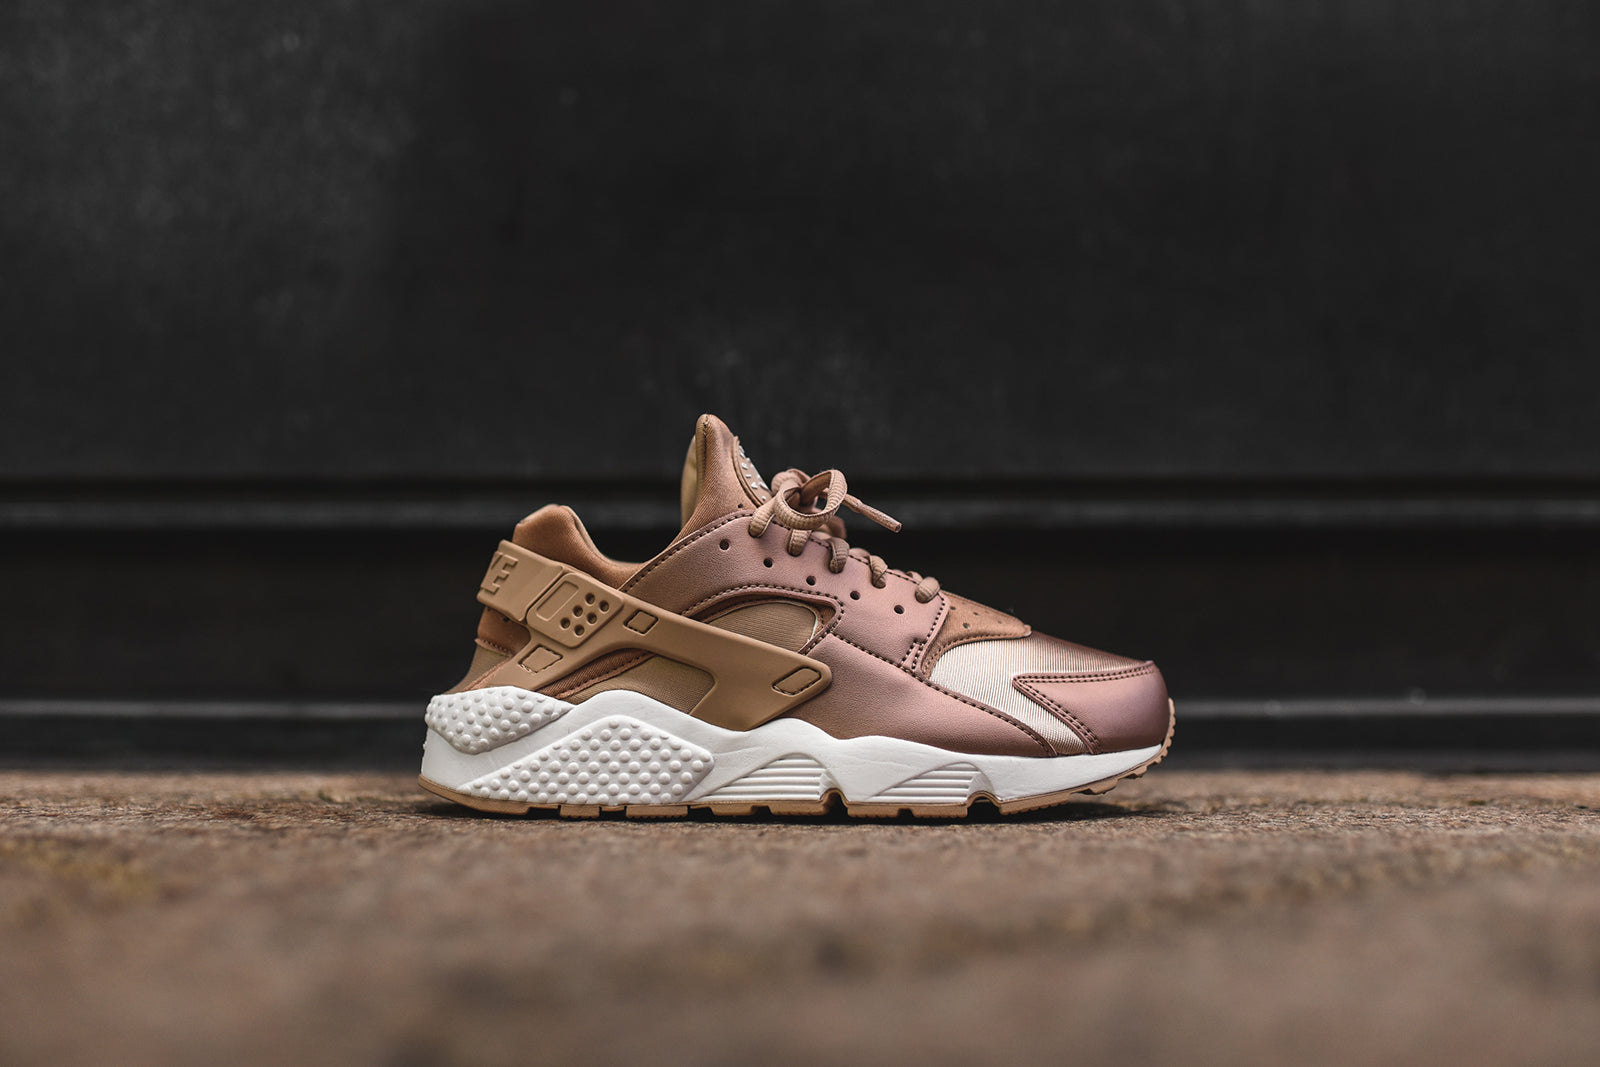 07156f5aa10b Nike WMNS Air Huarache Run SE - Bronze. October 26